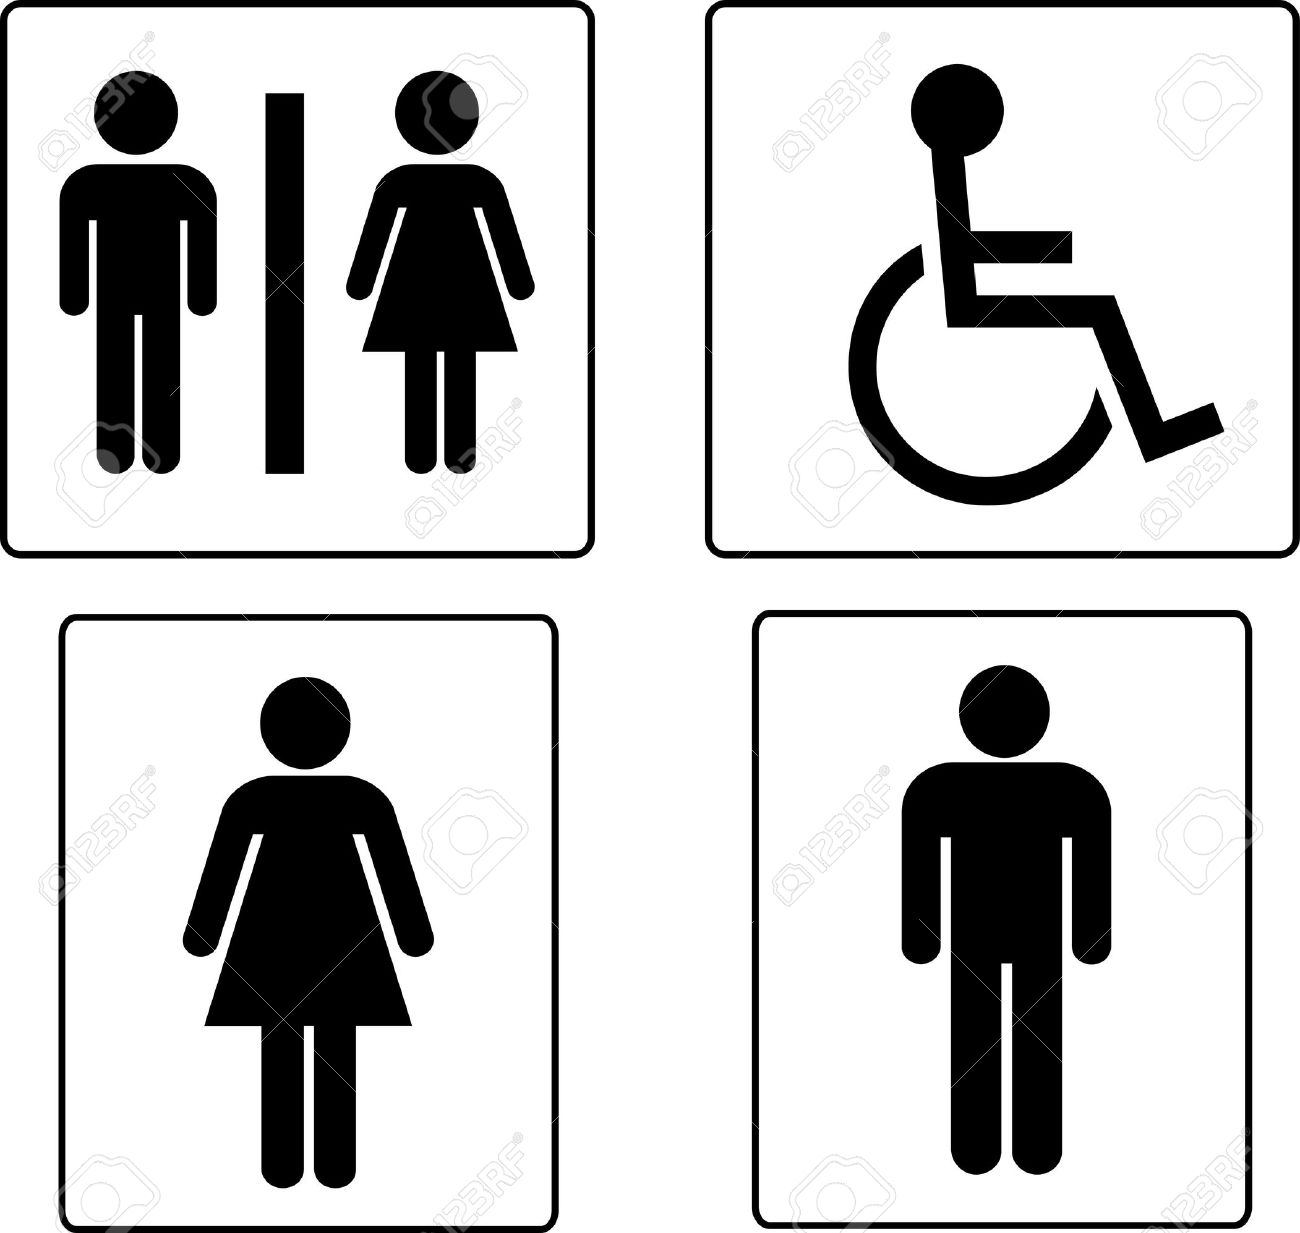 Bathroom sign with arrow - Stock Photo Set Of Restroom Symbols